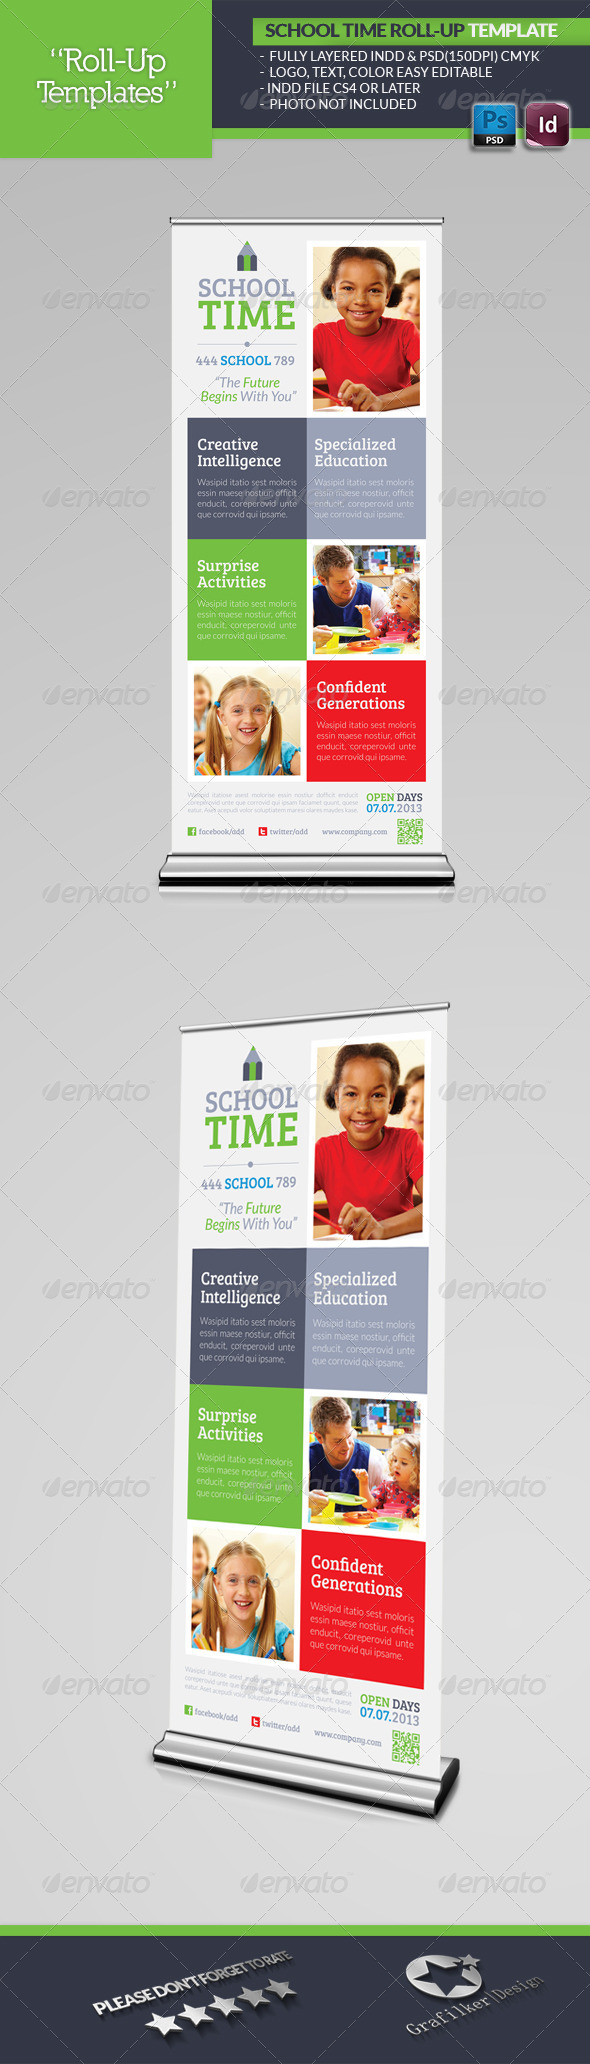 GraphicRiver School Time Roll-Up Template 4946972